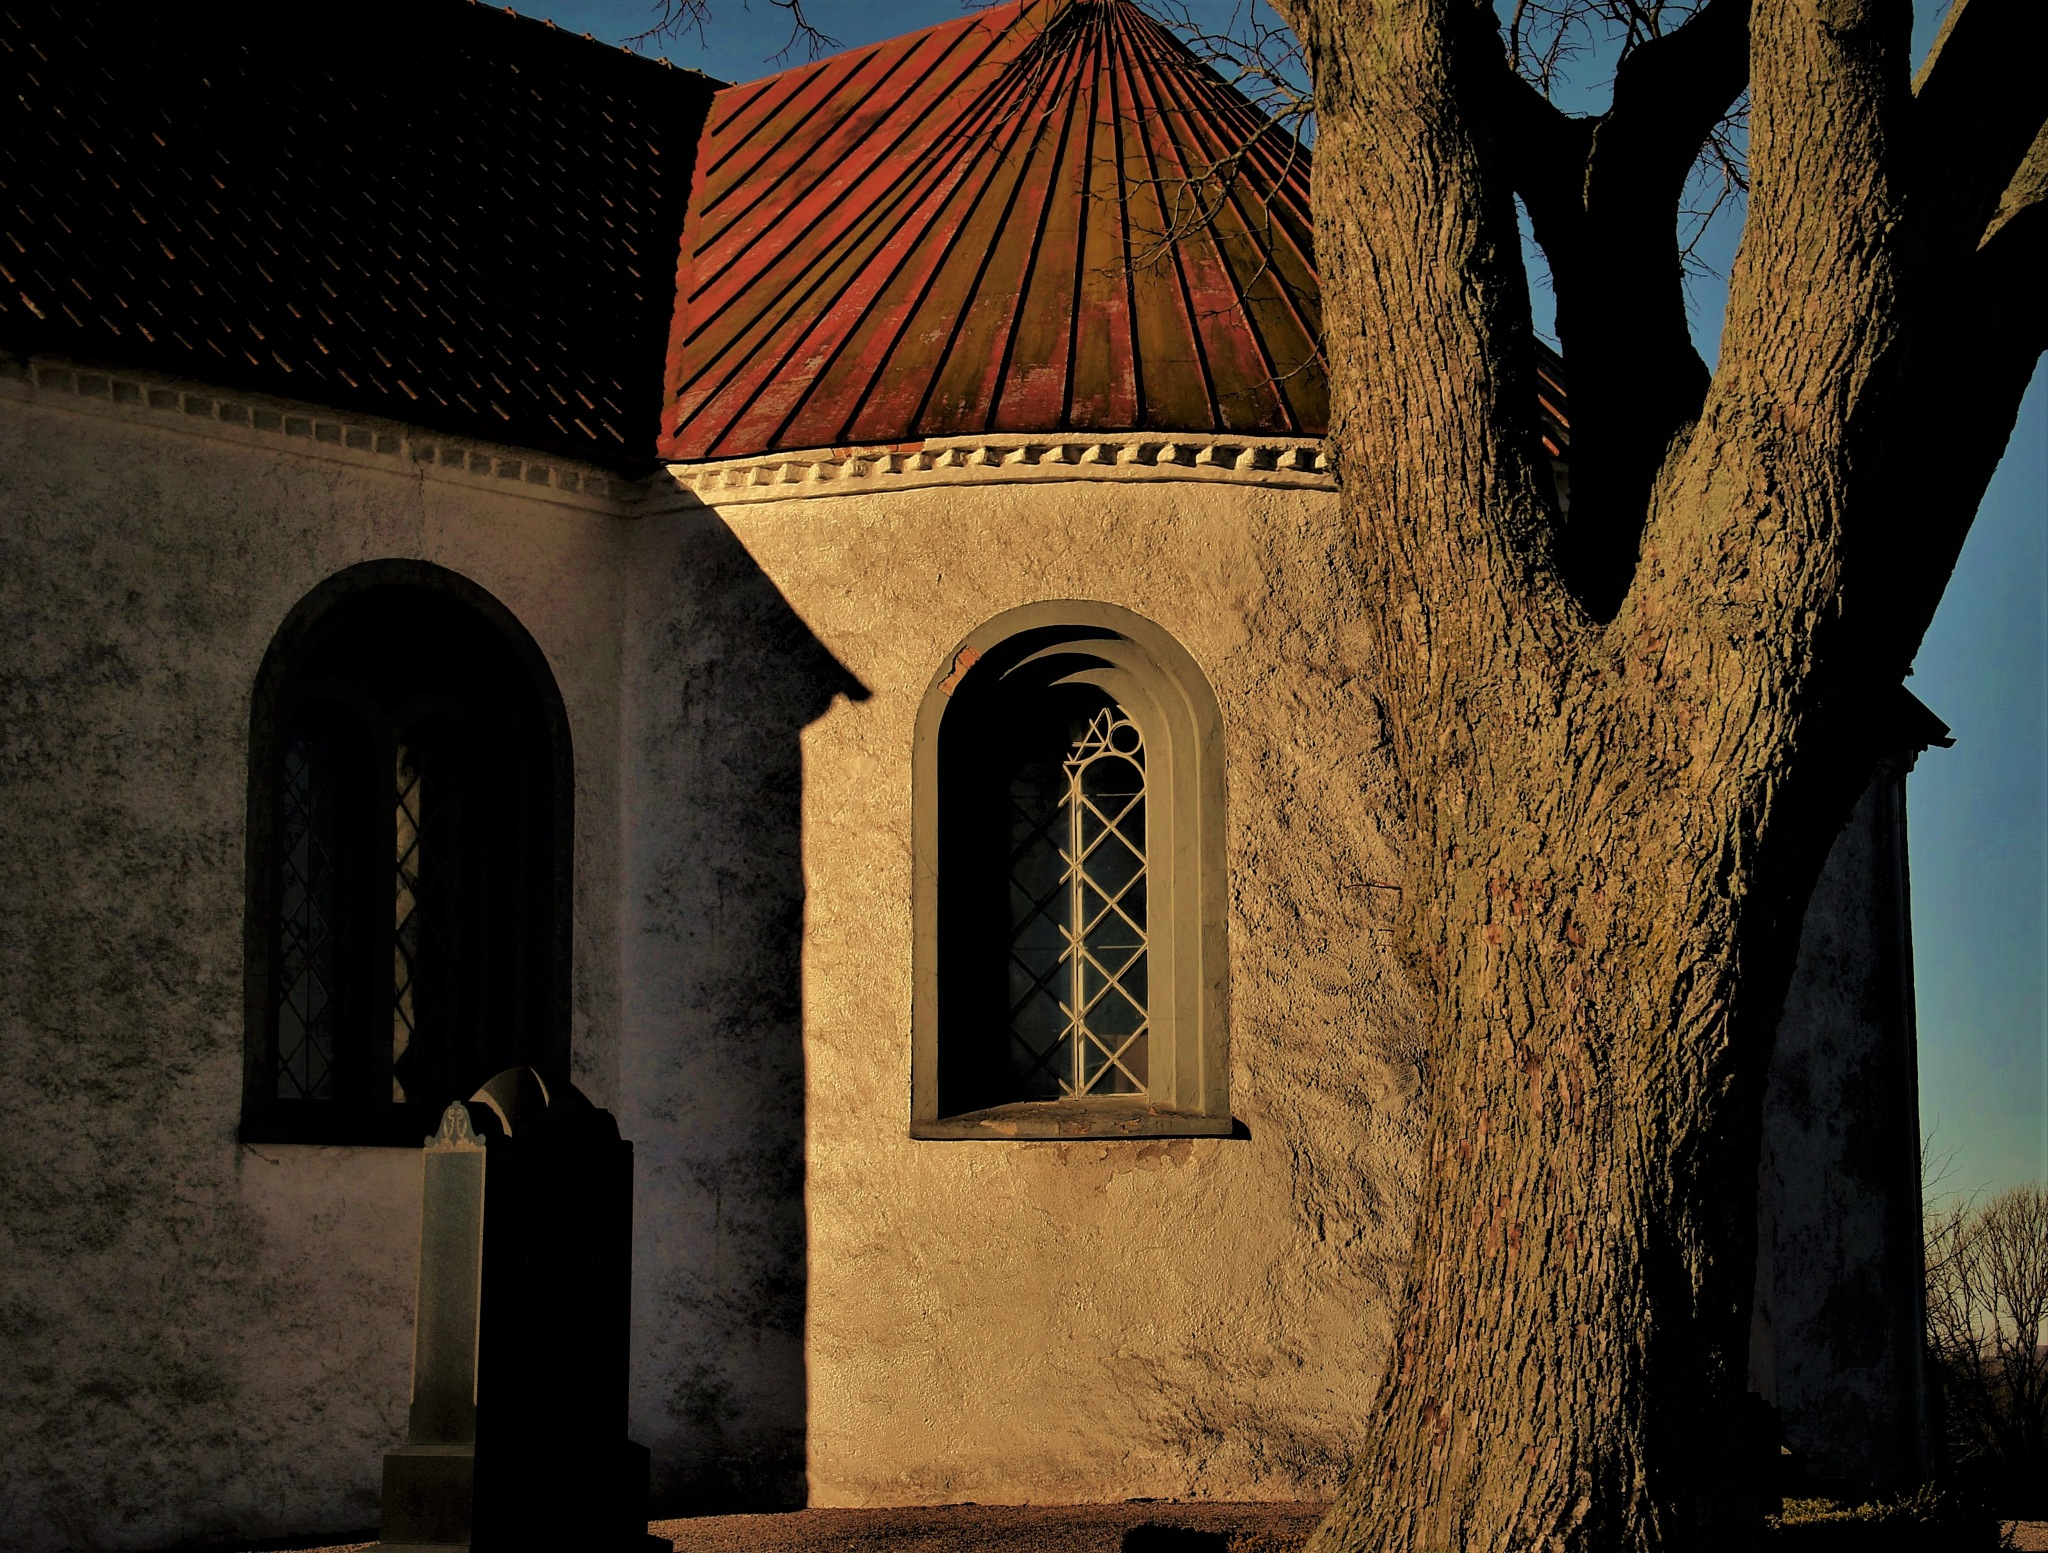 A Church and a Tree. by KerstinP.